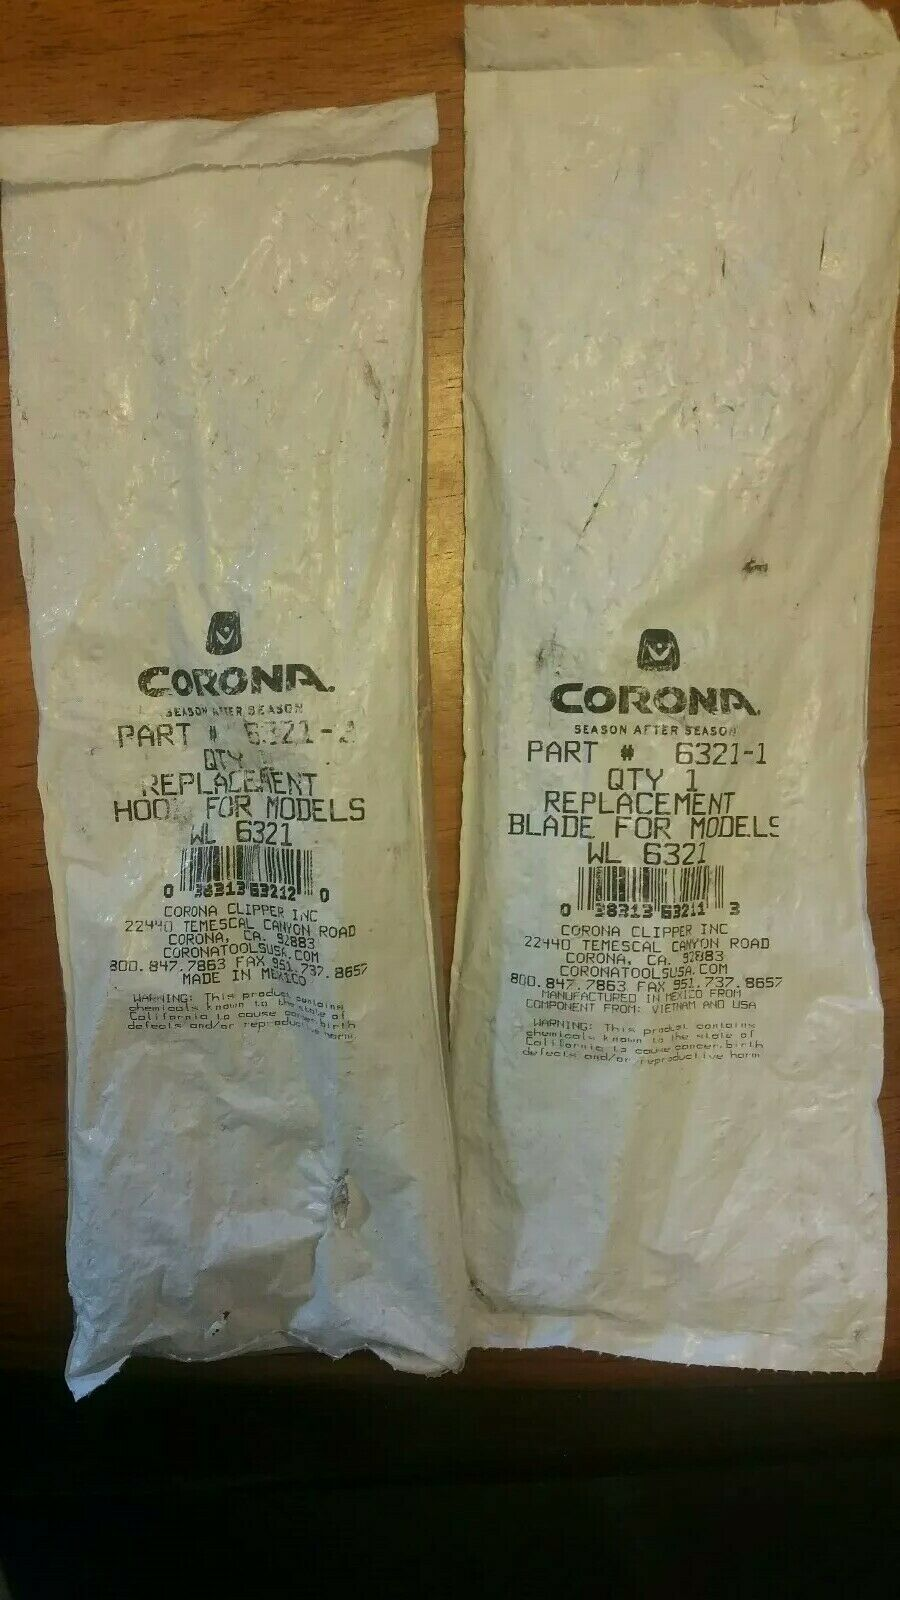 CGoldna Replacement Hook Blades for WL 6321-2 and 6321-1